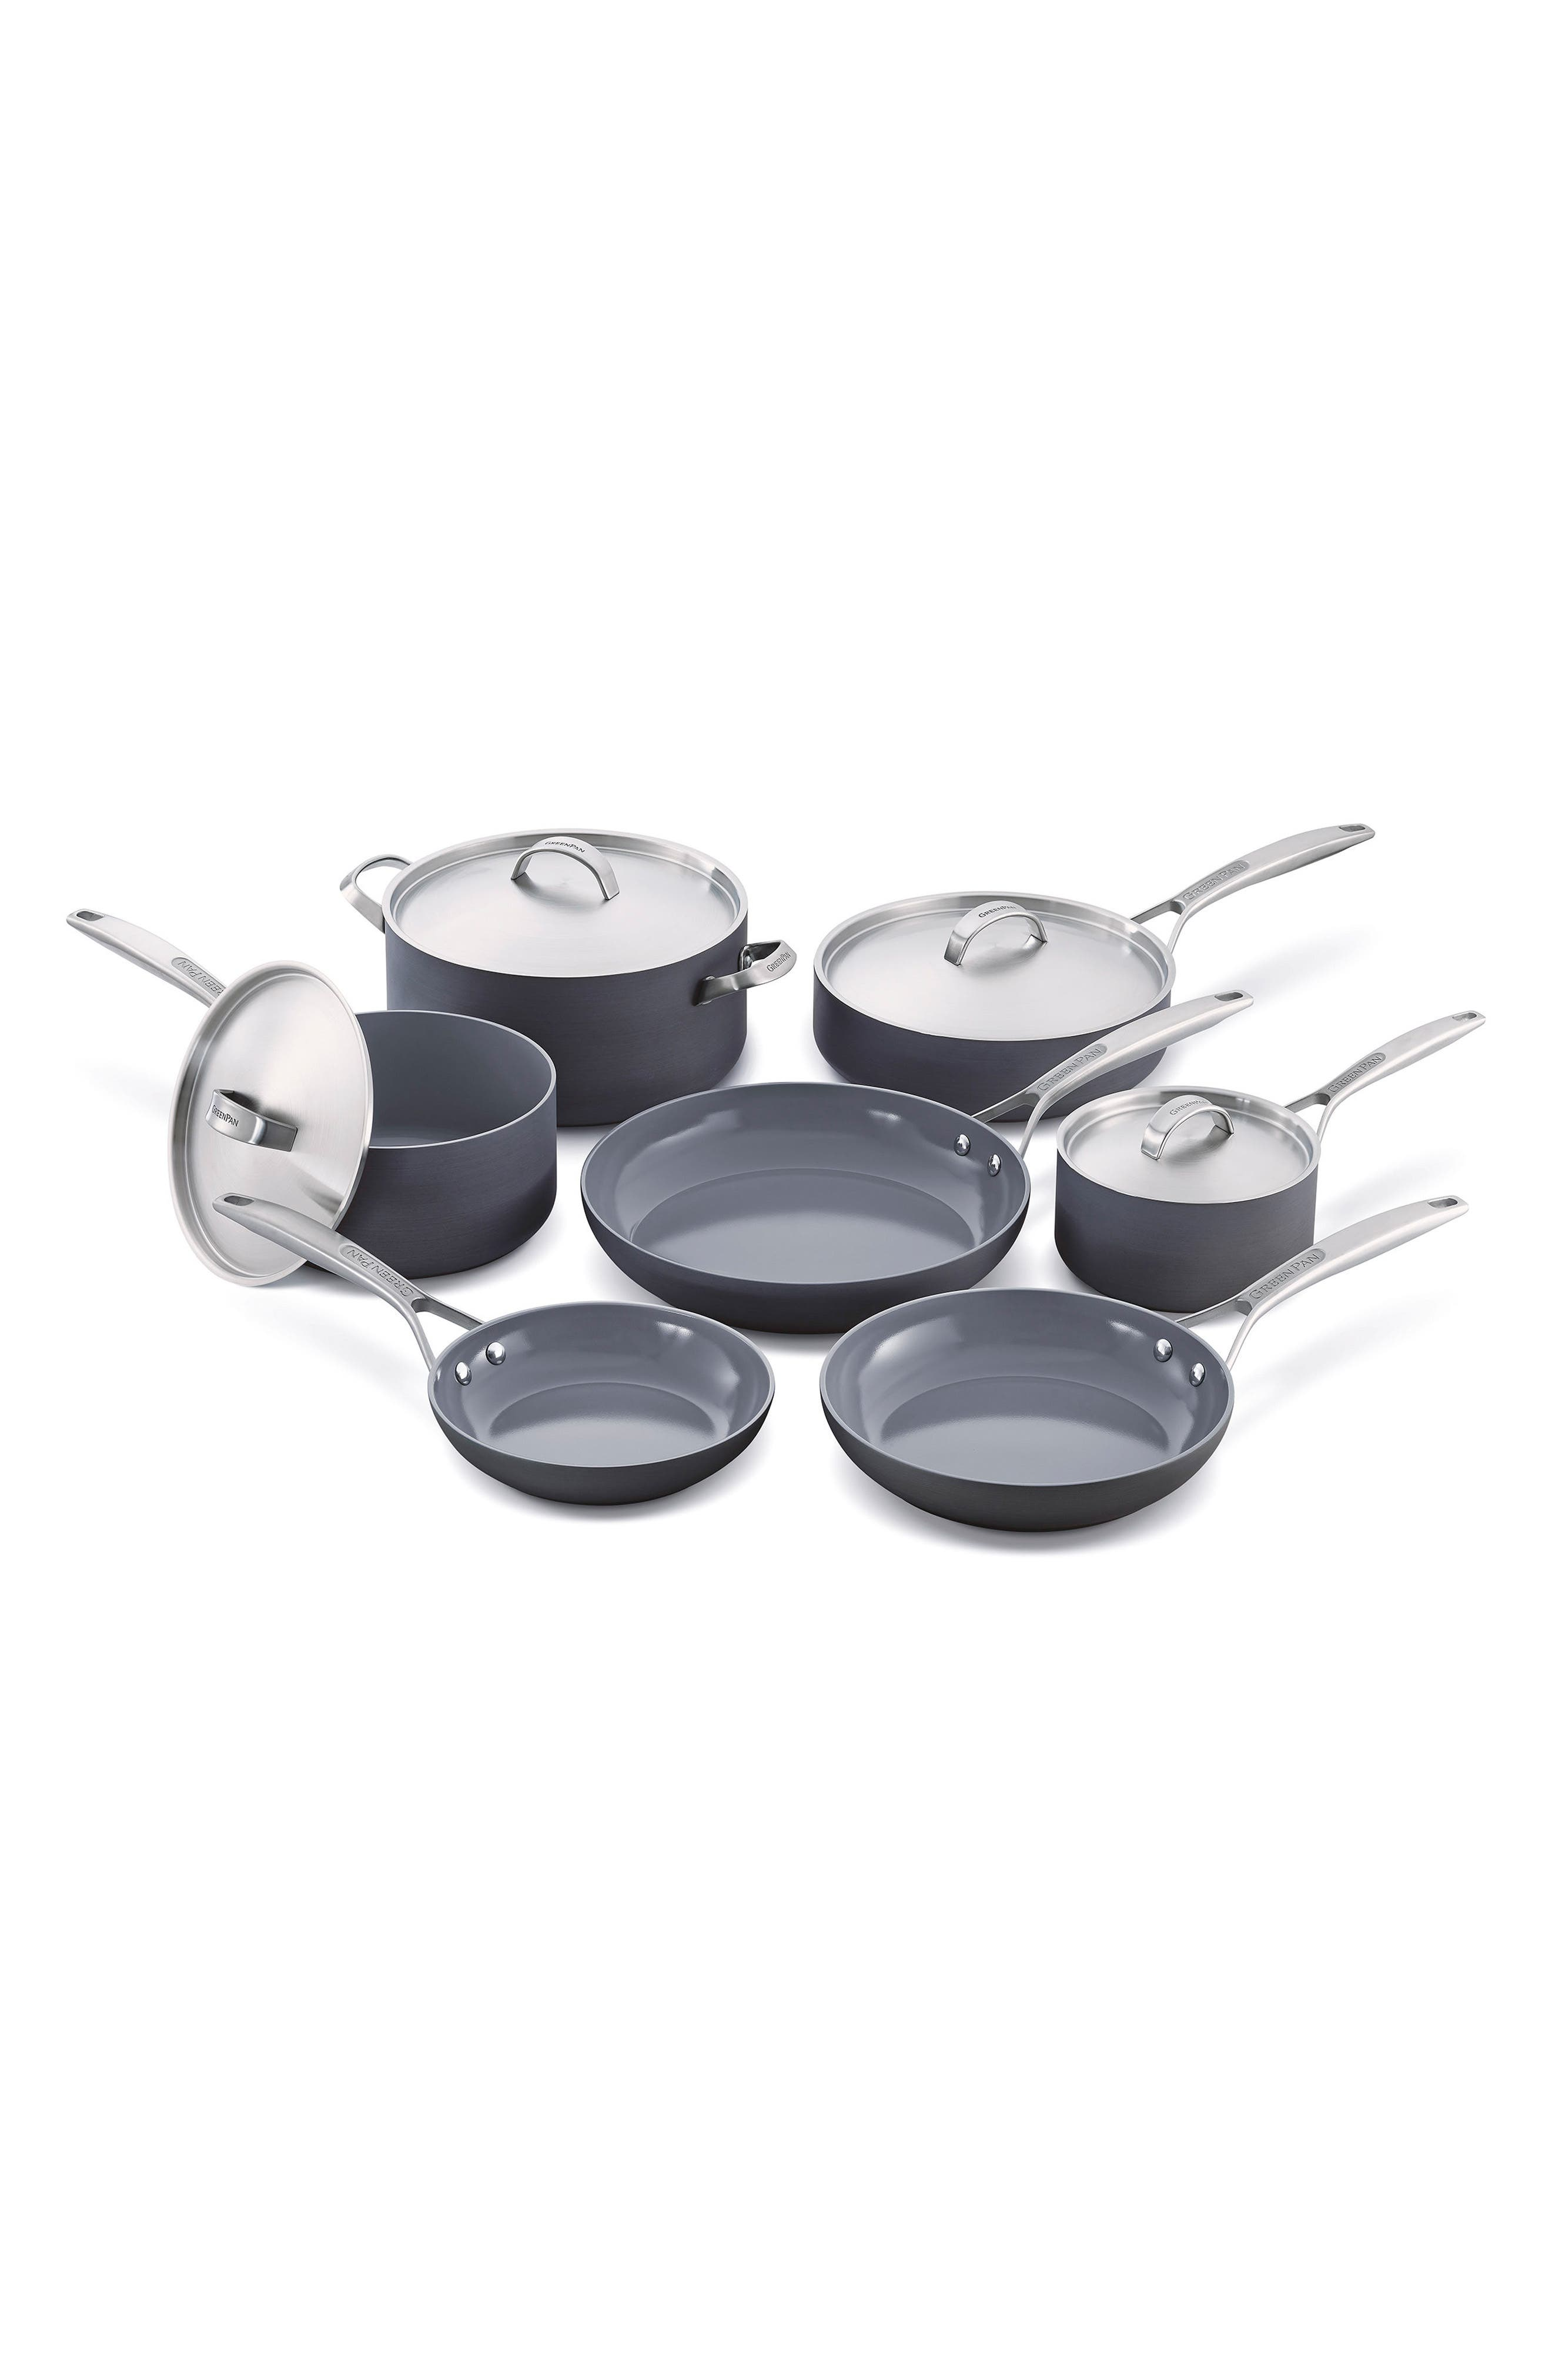 Paris Pro 11-Piece Anodized Aluminum Ceramic Cookware Set,                         Main,                         color, Grey